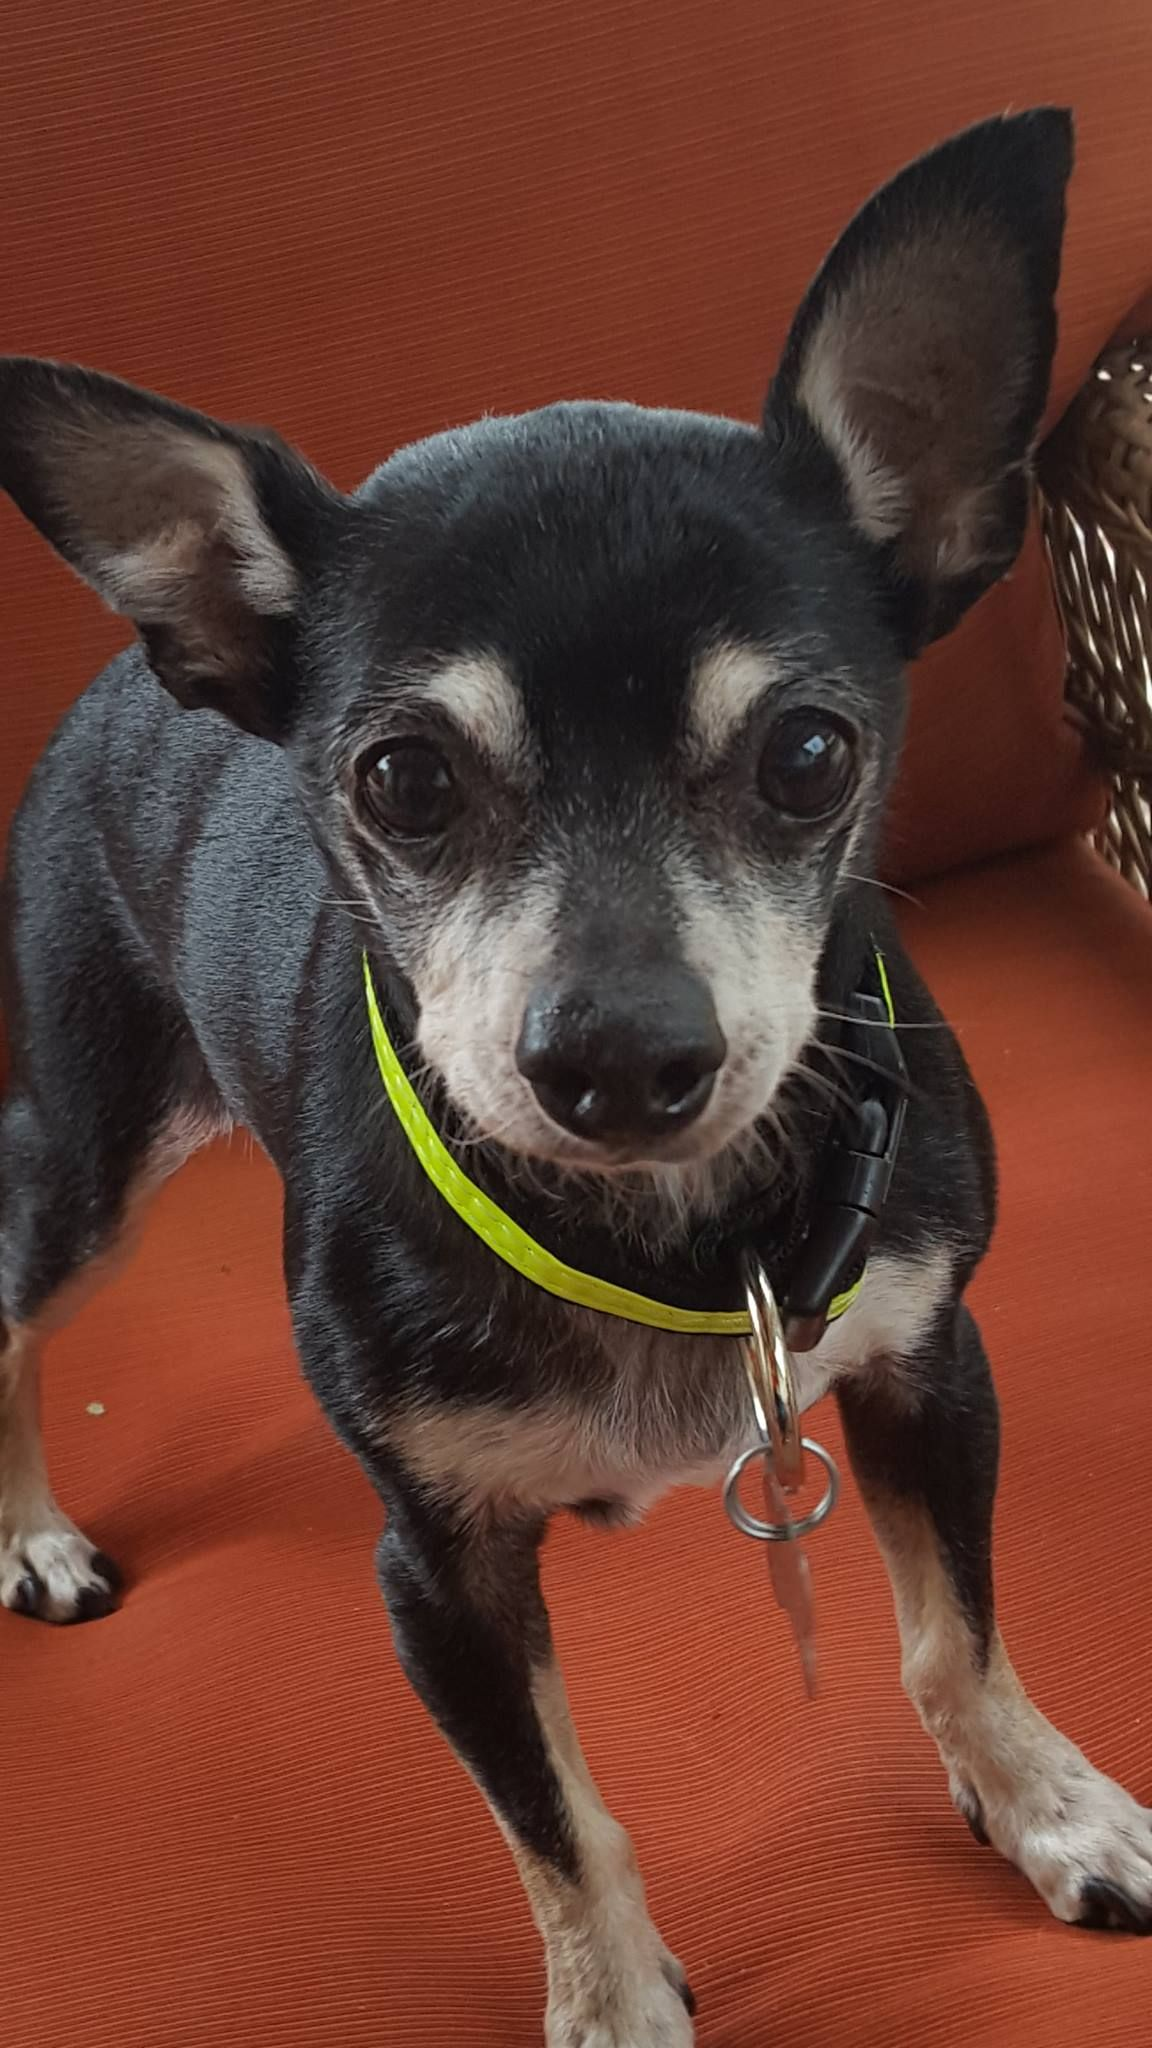 Chipin Dog For Adoption In Colorado Springs Co Adn 617102 On Puppyfinder Com Gender Male Age Senior Dogs Rescue Dogs Miniature Pinscher